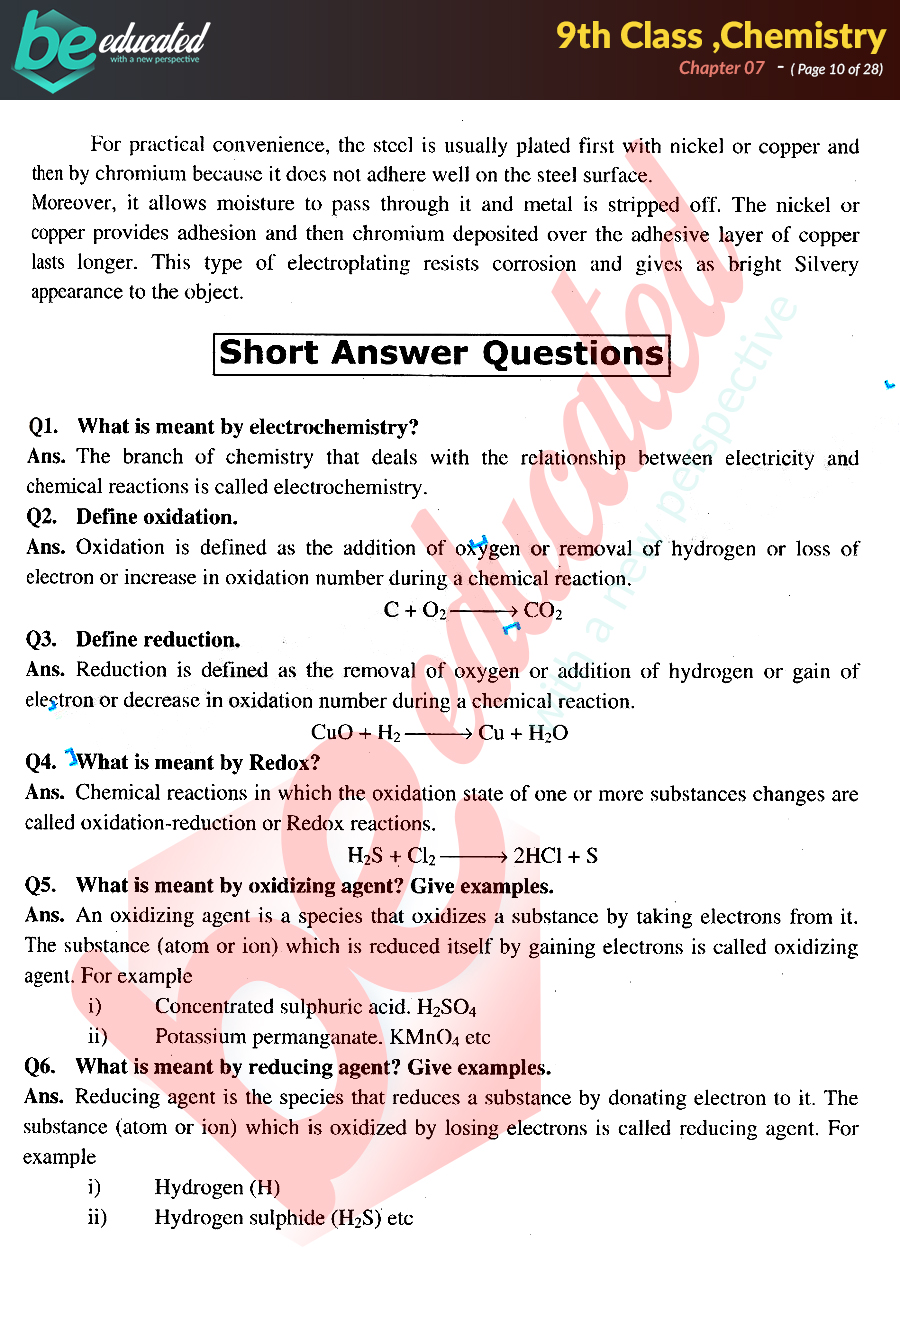 Chapter 7 Chemistry 9th Class Notes - Matric Part 1 Notes